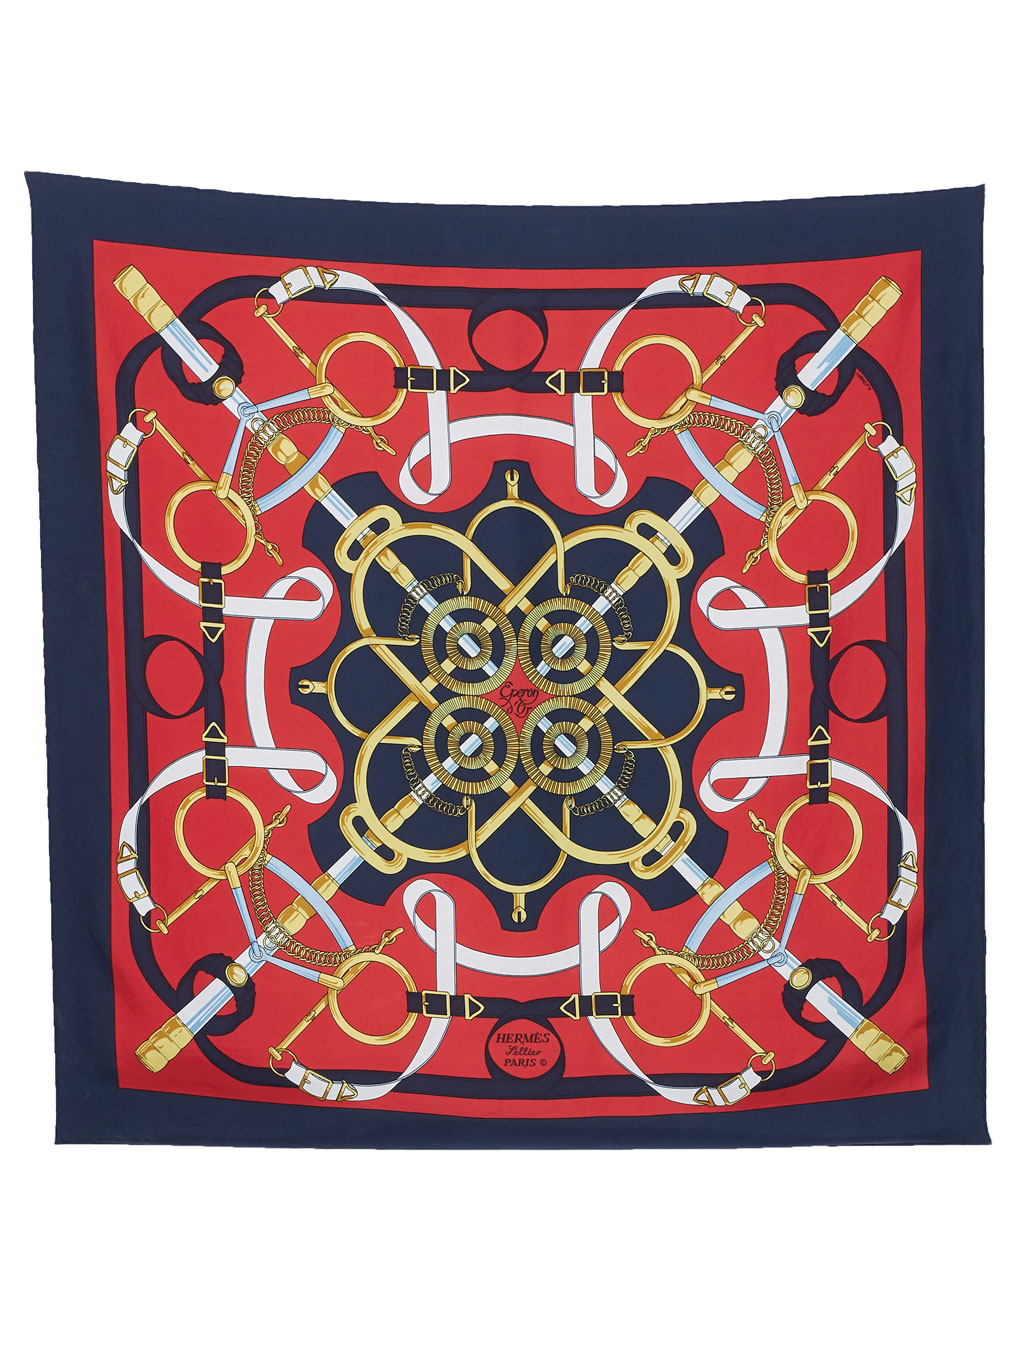 HERMES チェーンモチーフ SCARF